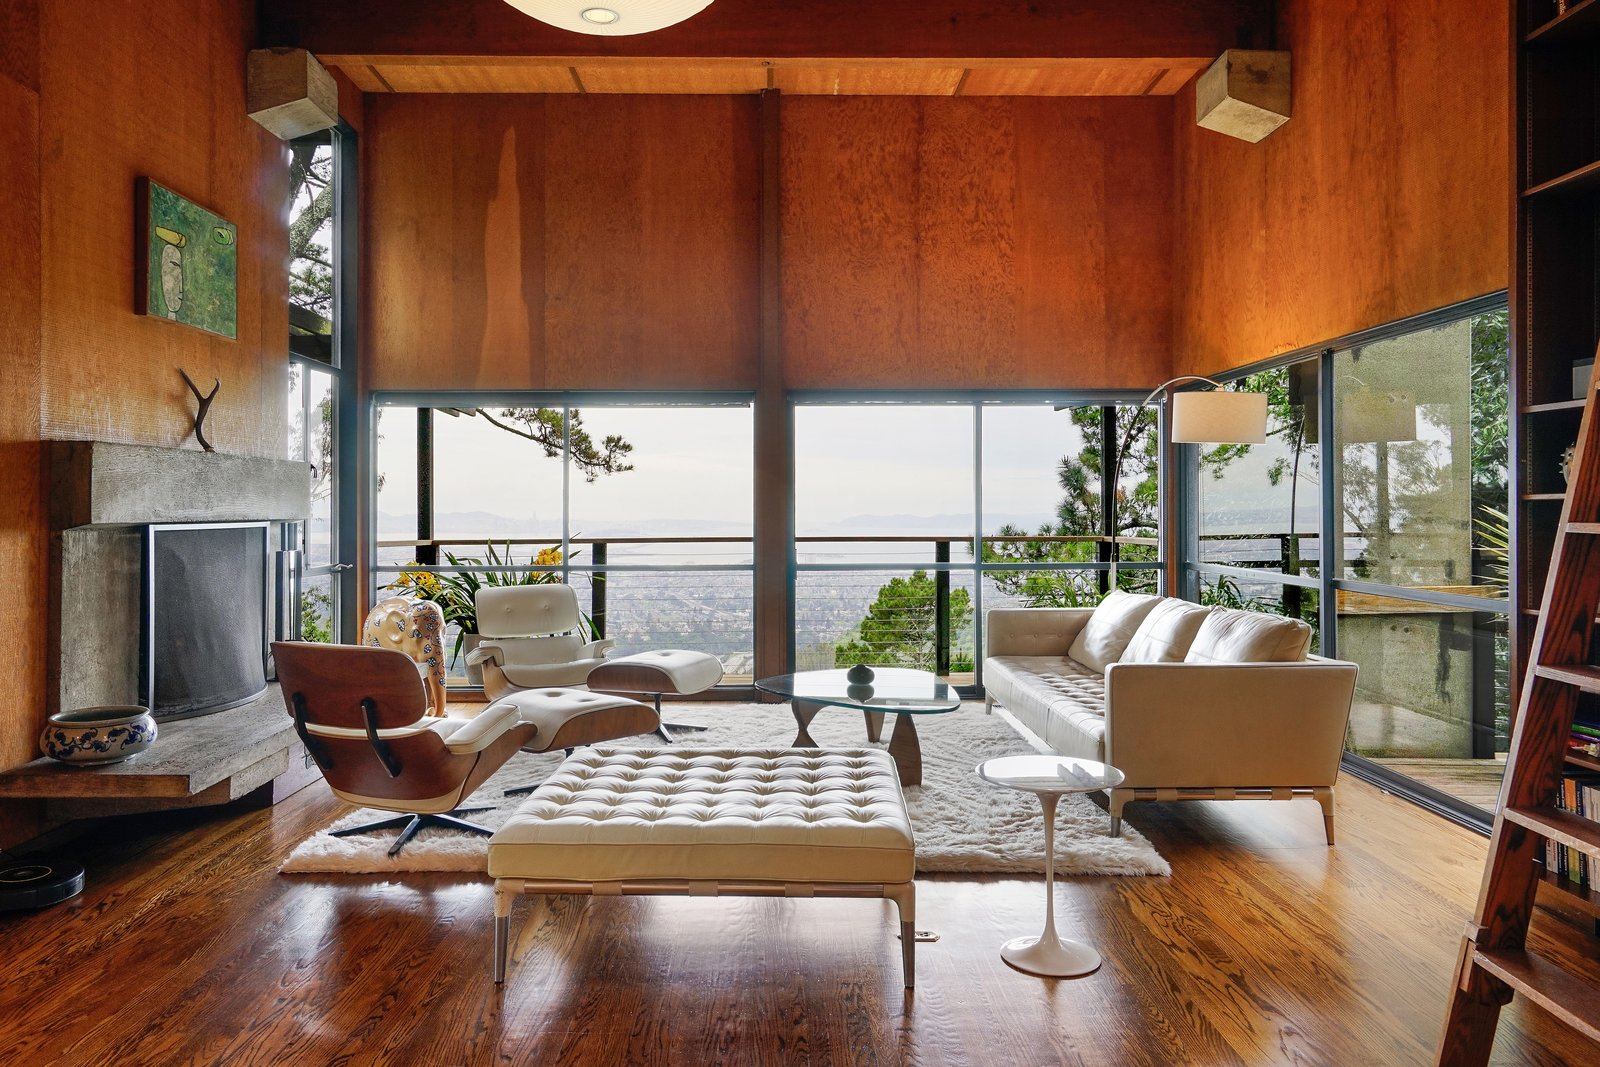 Living, Sofa, Chair, Standard Layout, End Tables, Coffee Tables, Medium Hardwood, Wood Burning, Ottomans, Floor, Shelves, and Pendant The living room takes full advantage of the homes' stunning views.  Living Ottomans Shelves Standard Layout Photos from This Knockout Midcentury in the Bay Area Will Run You $1.9M